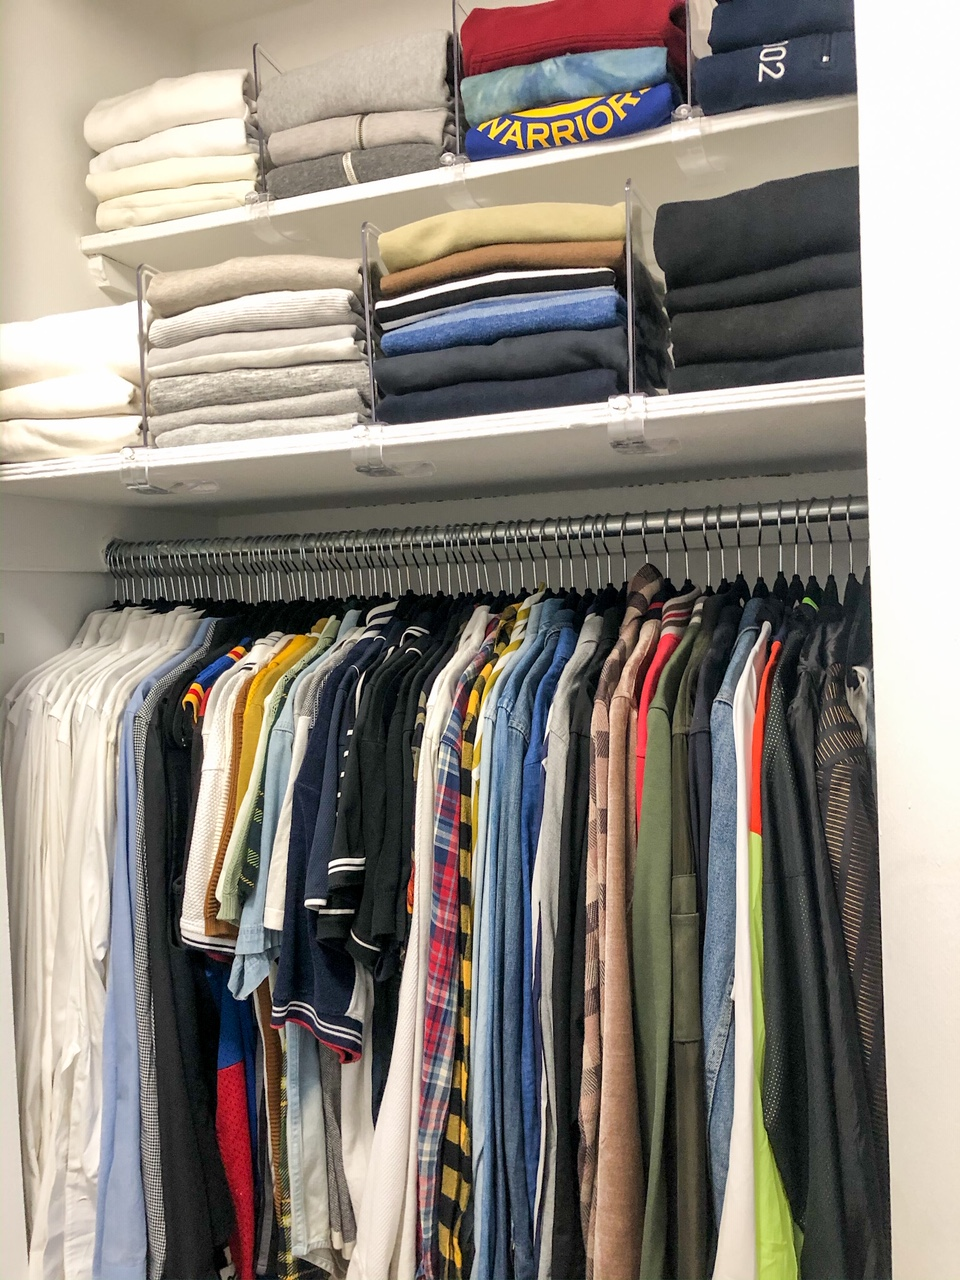 His Weekend Closet